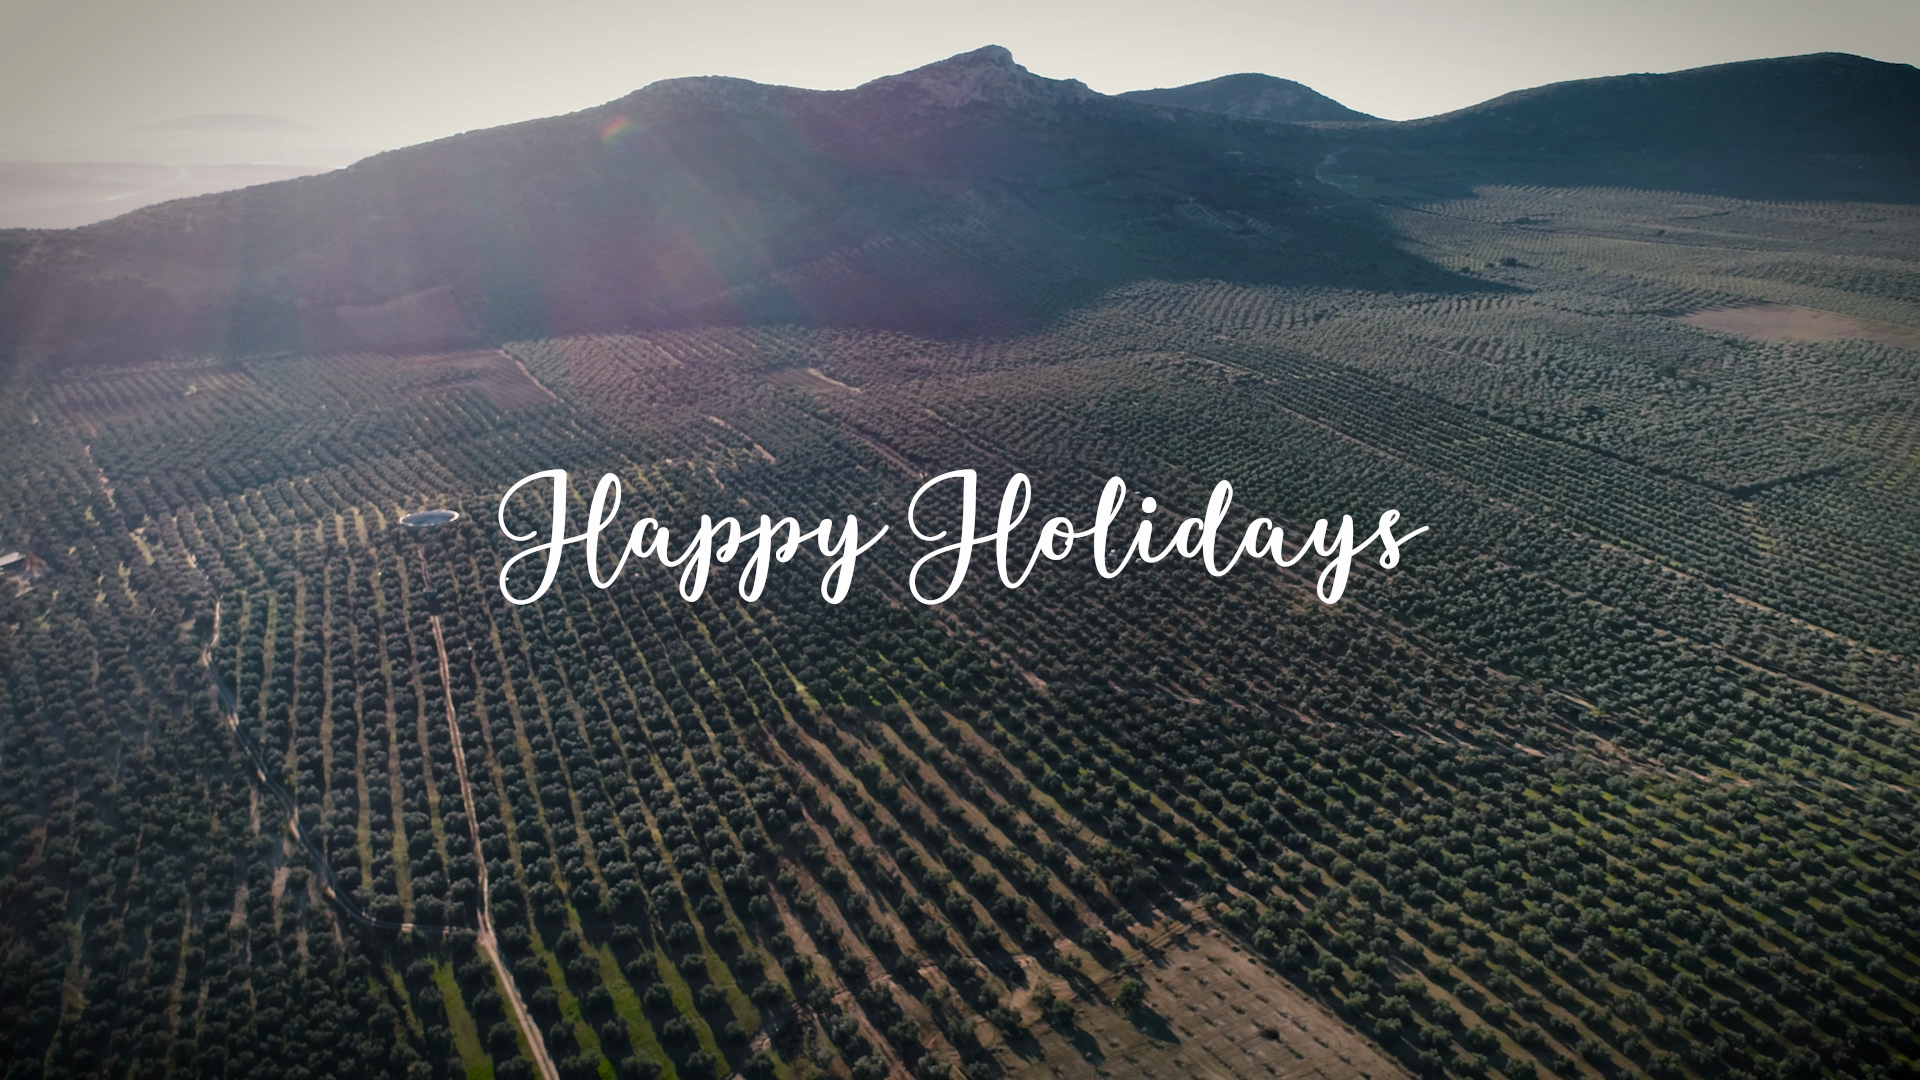 Oleoestepa wishes happy holidays and a magnificient New Year!